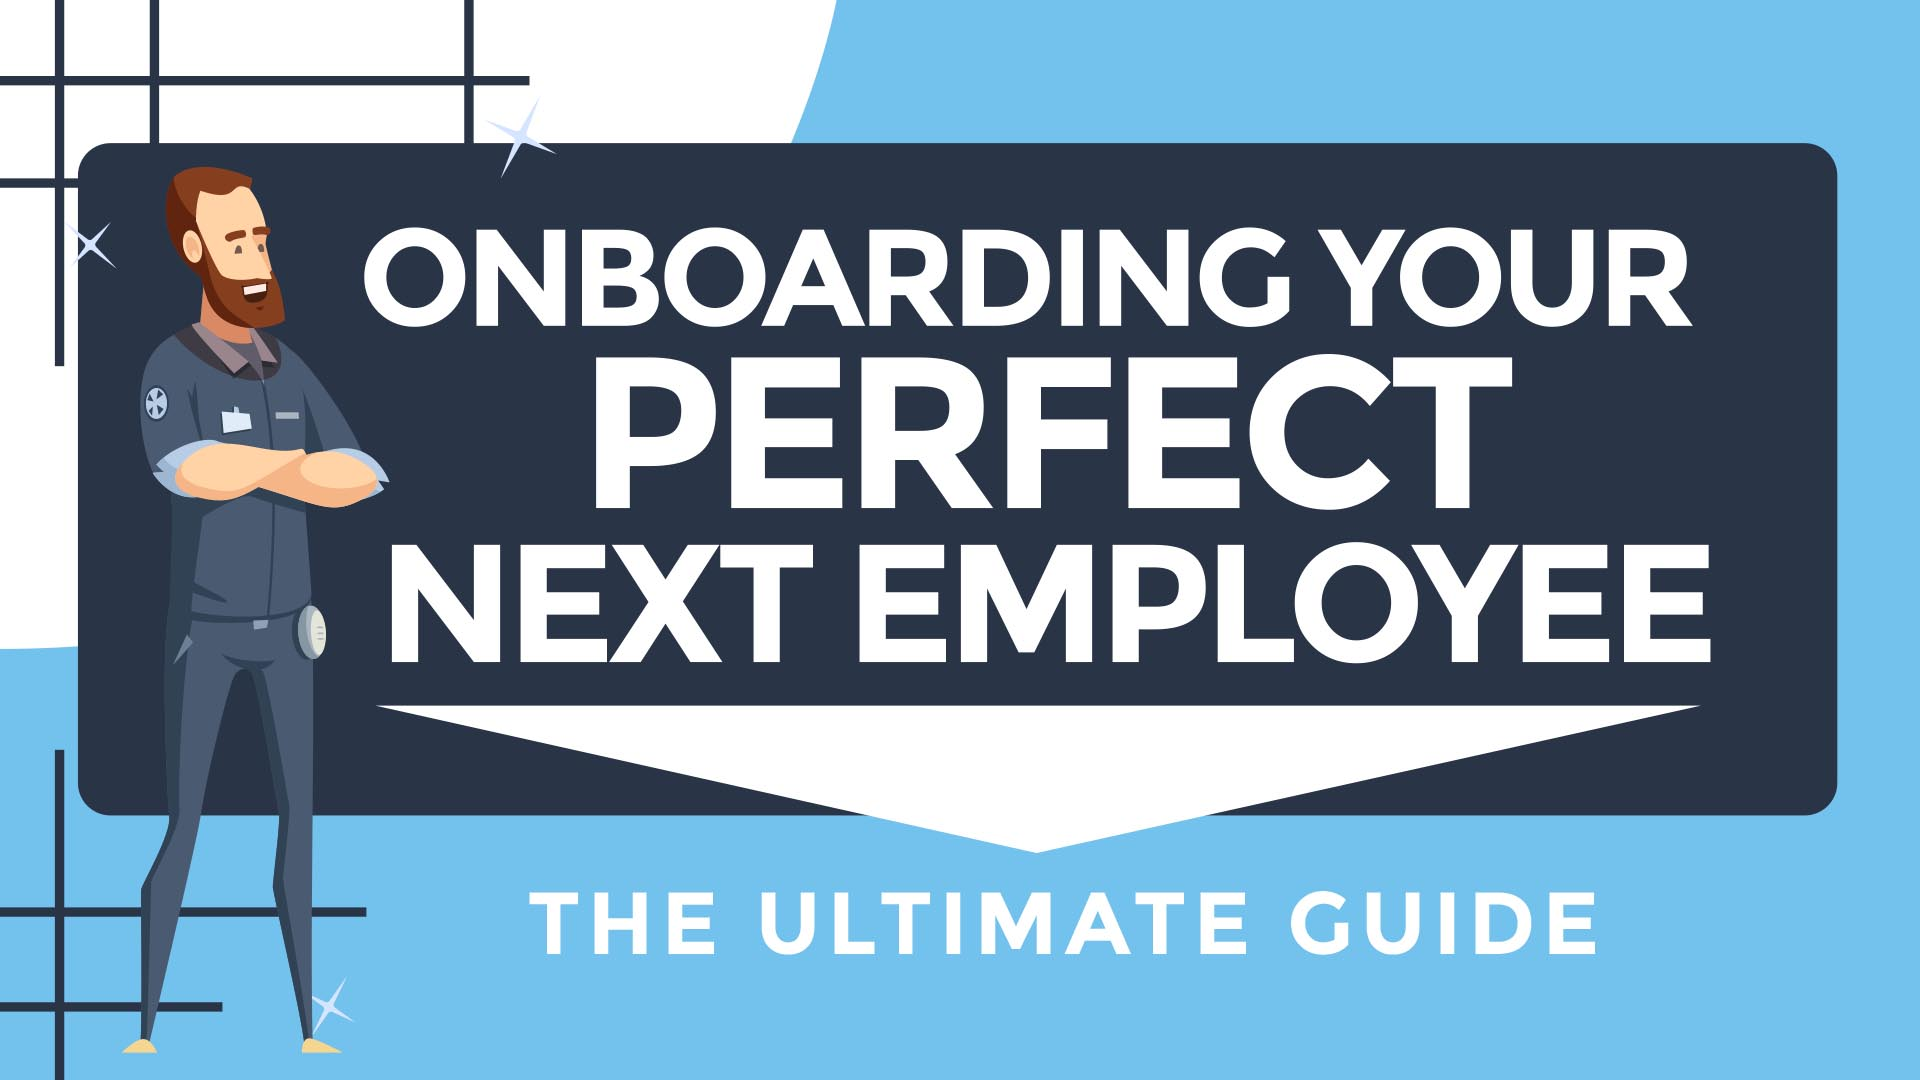 Onboarding your perfect next employee featured image